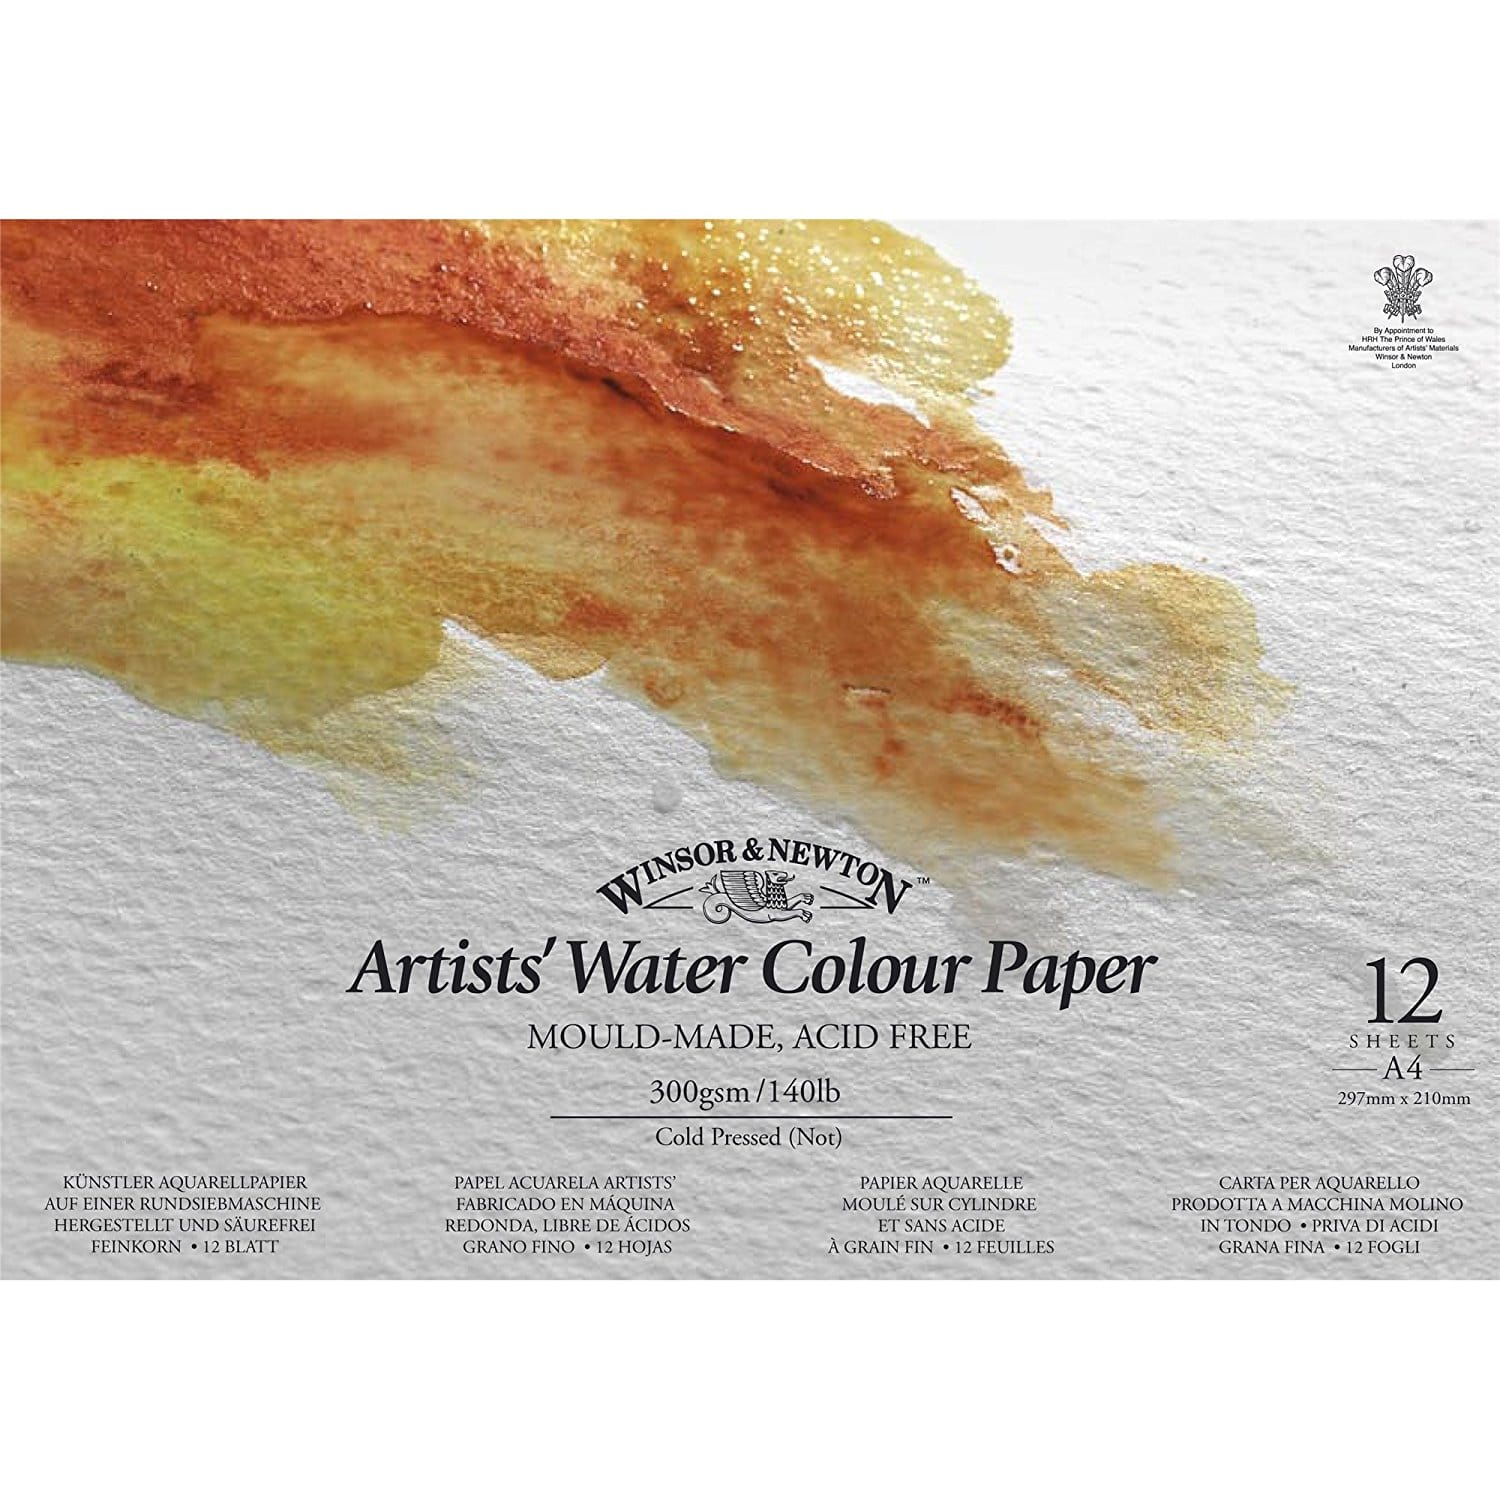 Winsor & Newton Cold Pressed Water Colour Pad - Watercolor Art Supplies For Beginners